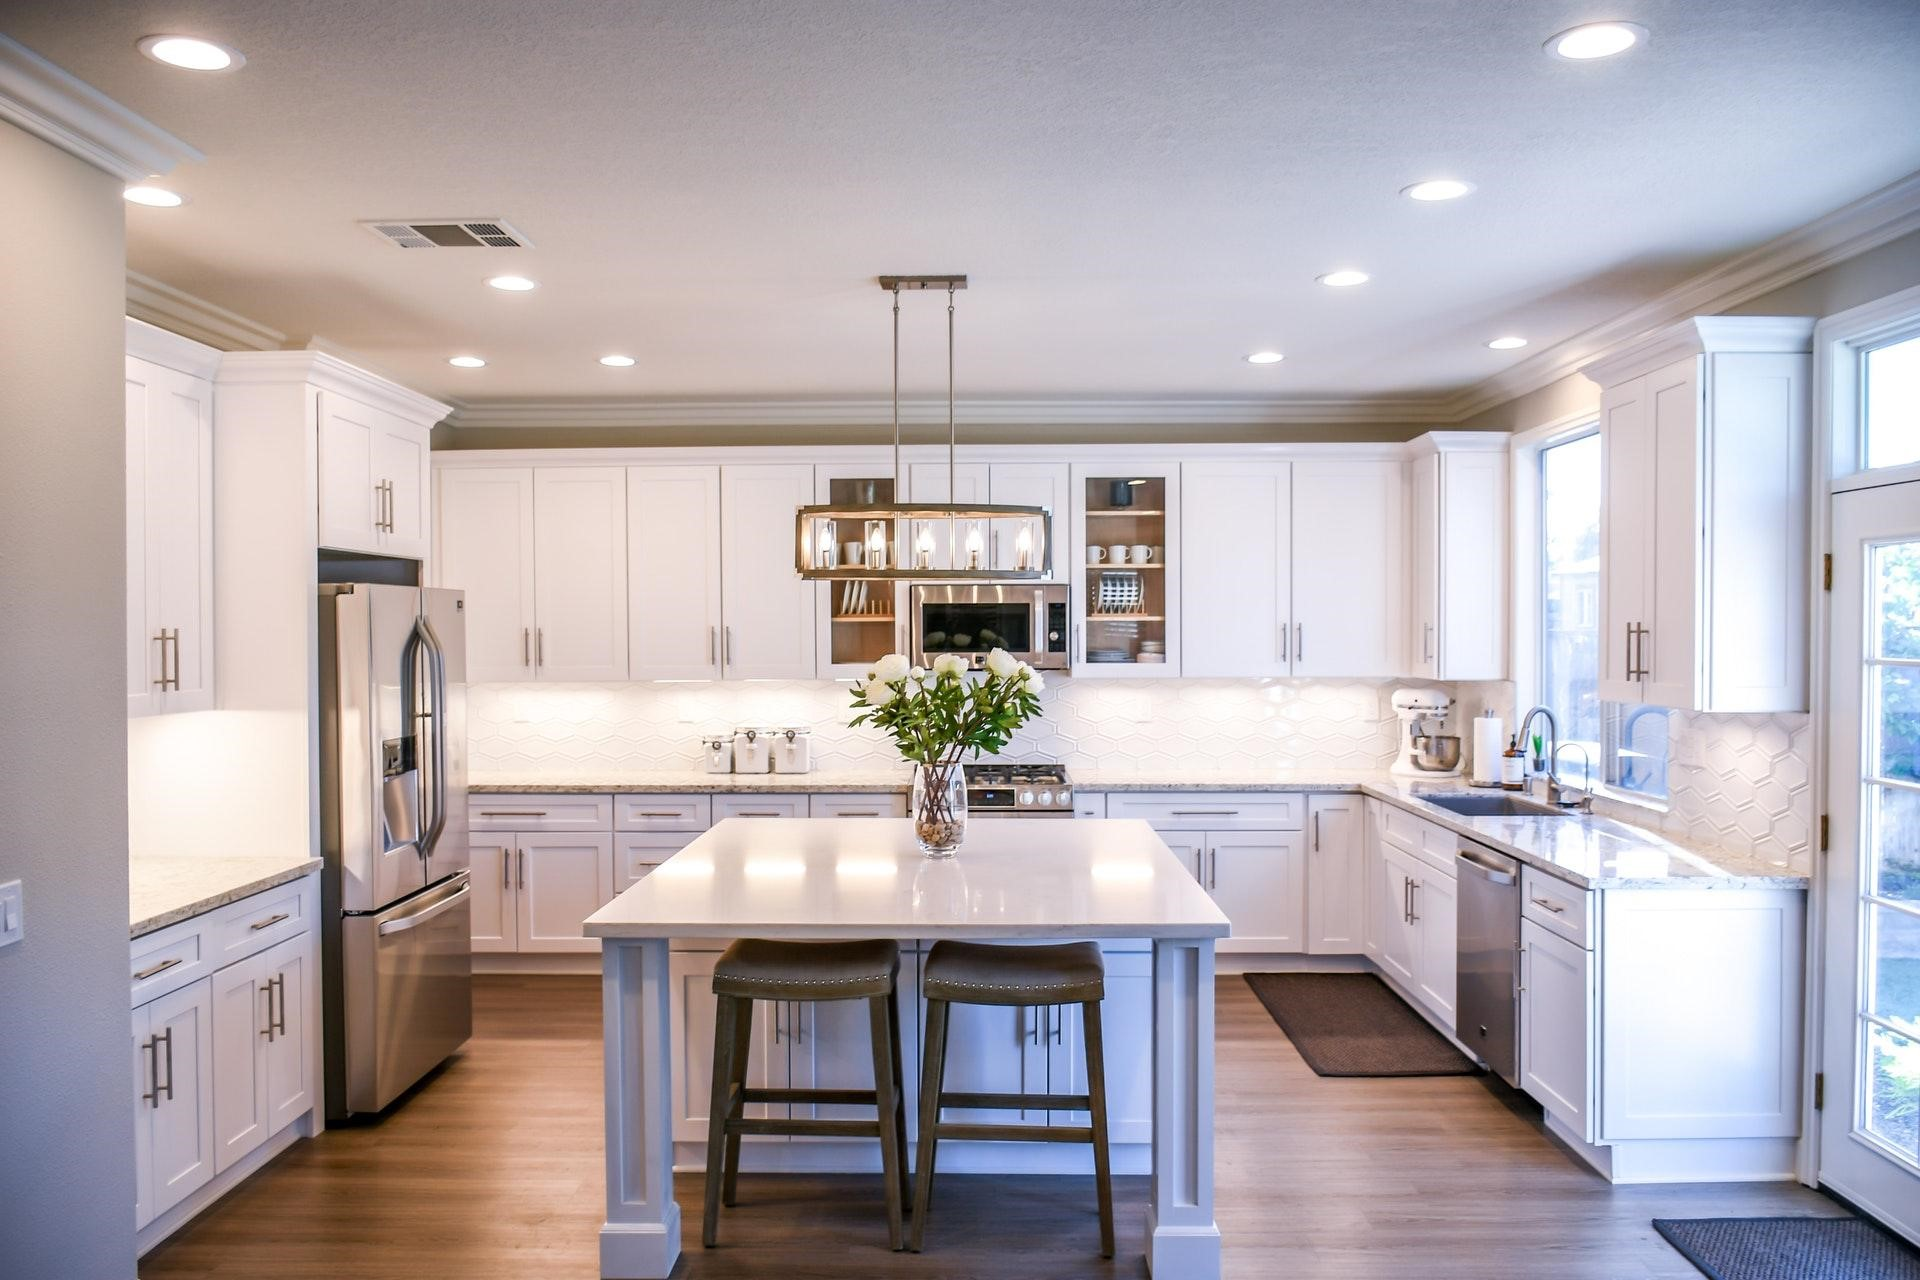 Home Remodels: Where to Save and Where to Splurge